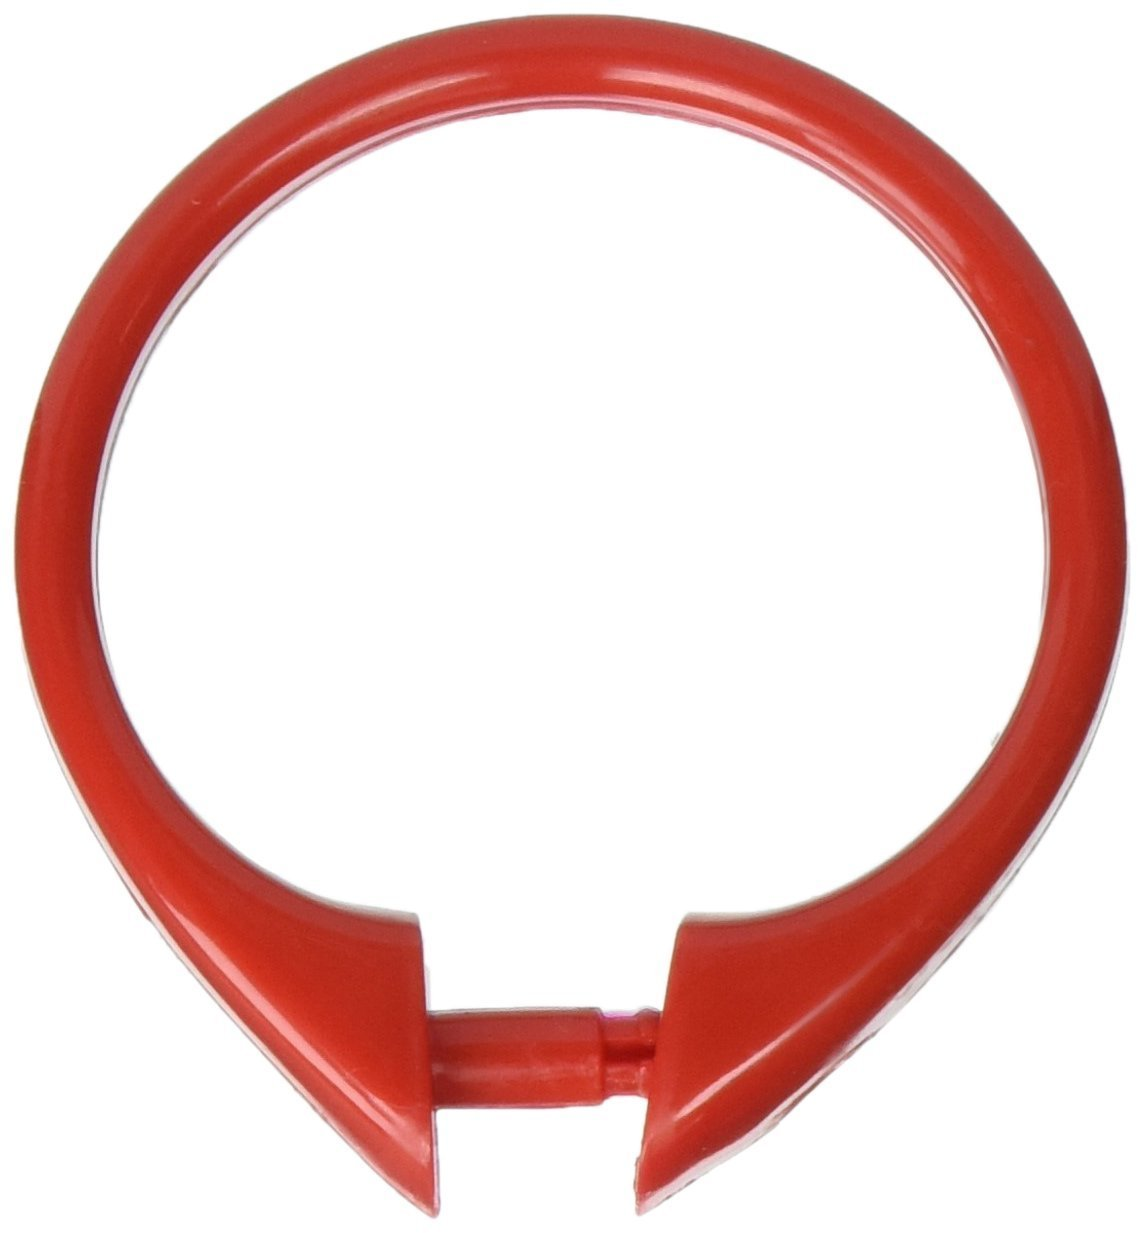 """""""Snap"""" Plastic Shower Curtain Hooks, Red, Set of 12 plastic shower curtain hooks By Carnation Home Fashions From USA"""